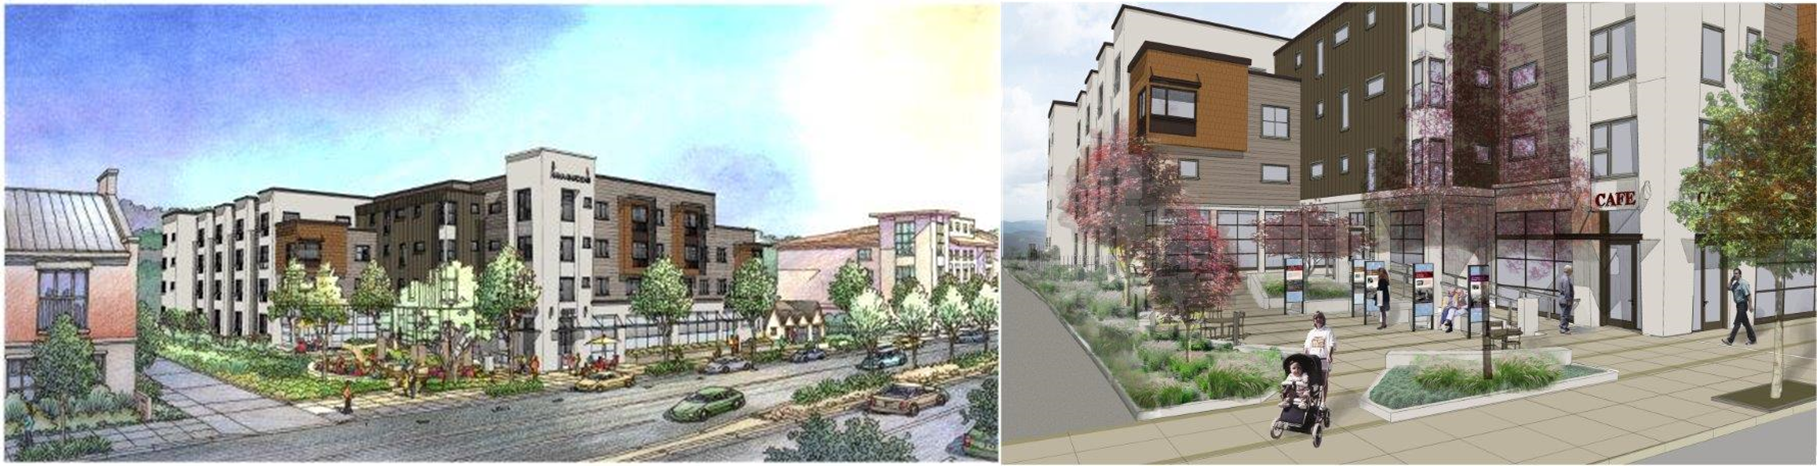 Proposed view of Hana Gardens Apartments and Heritage Plaza